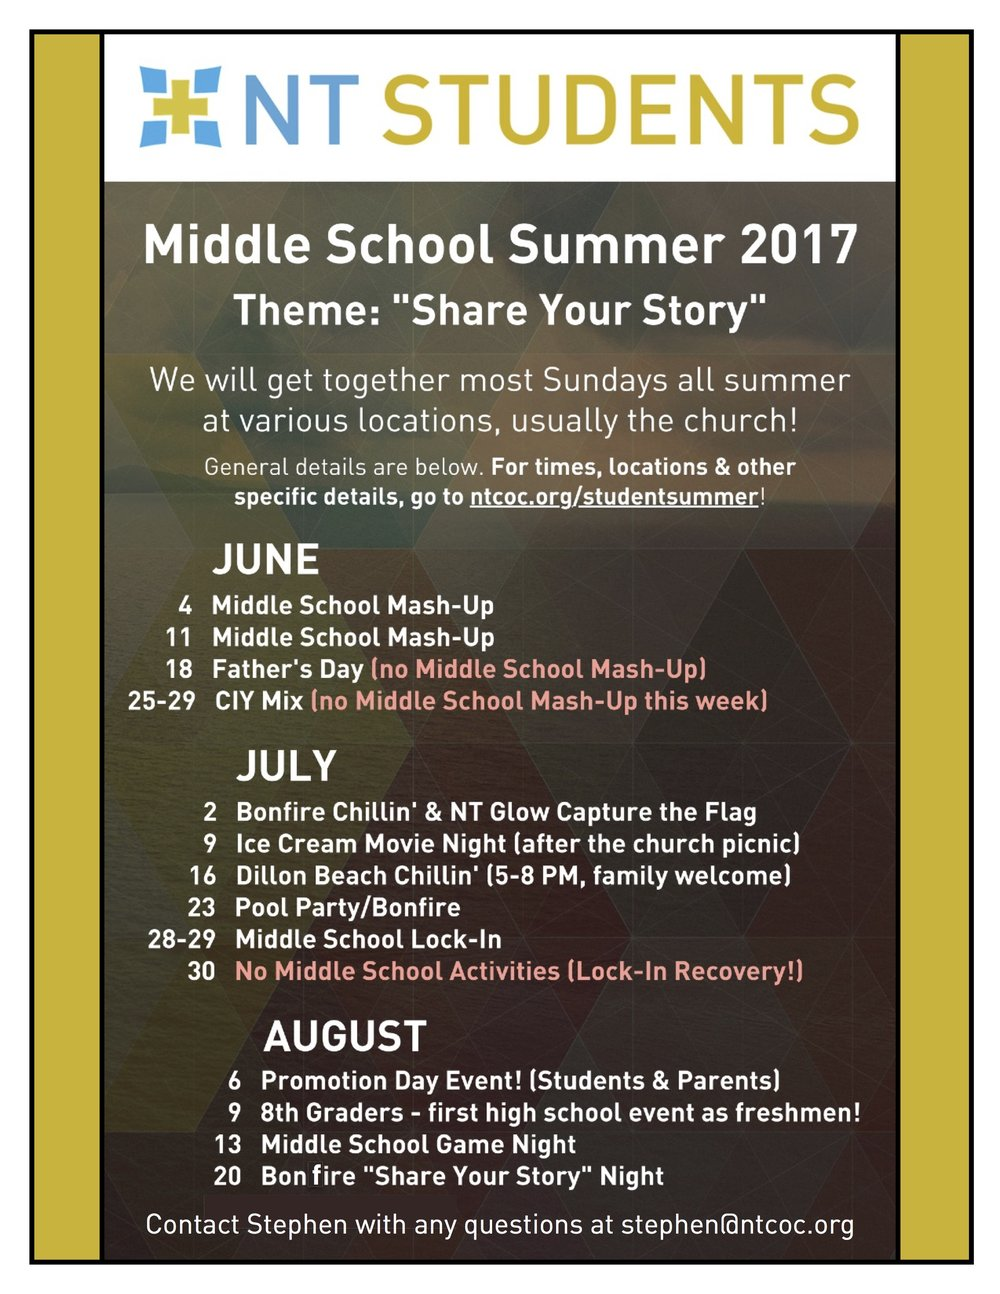 Middle School Summer Flyer.jpg